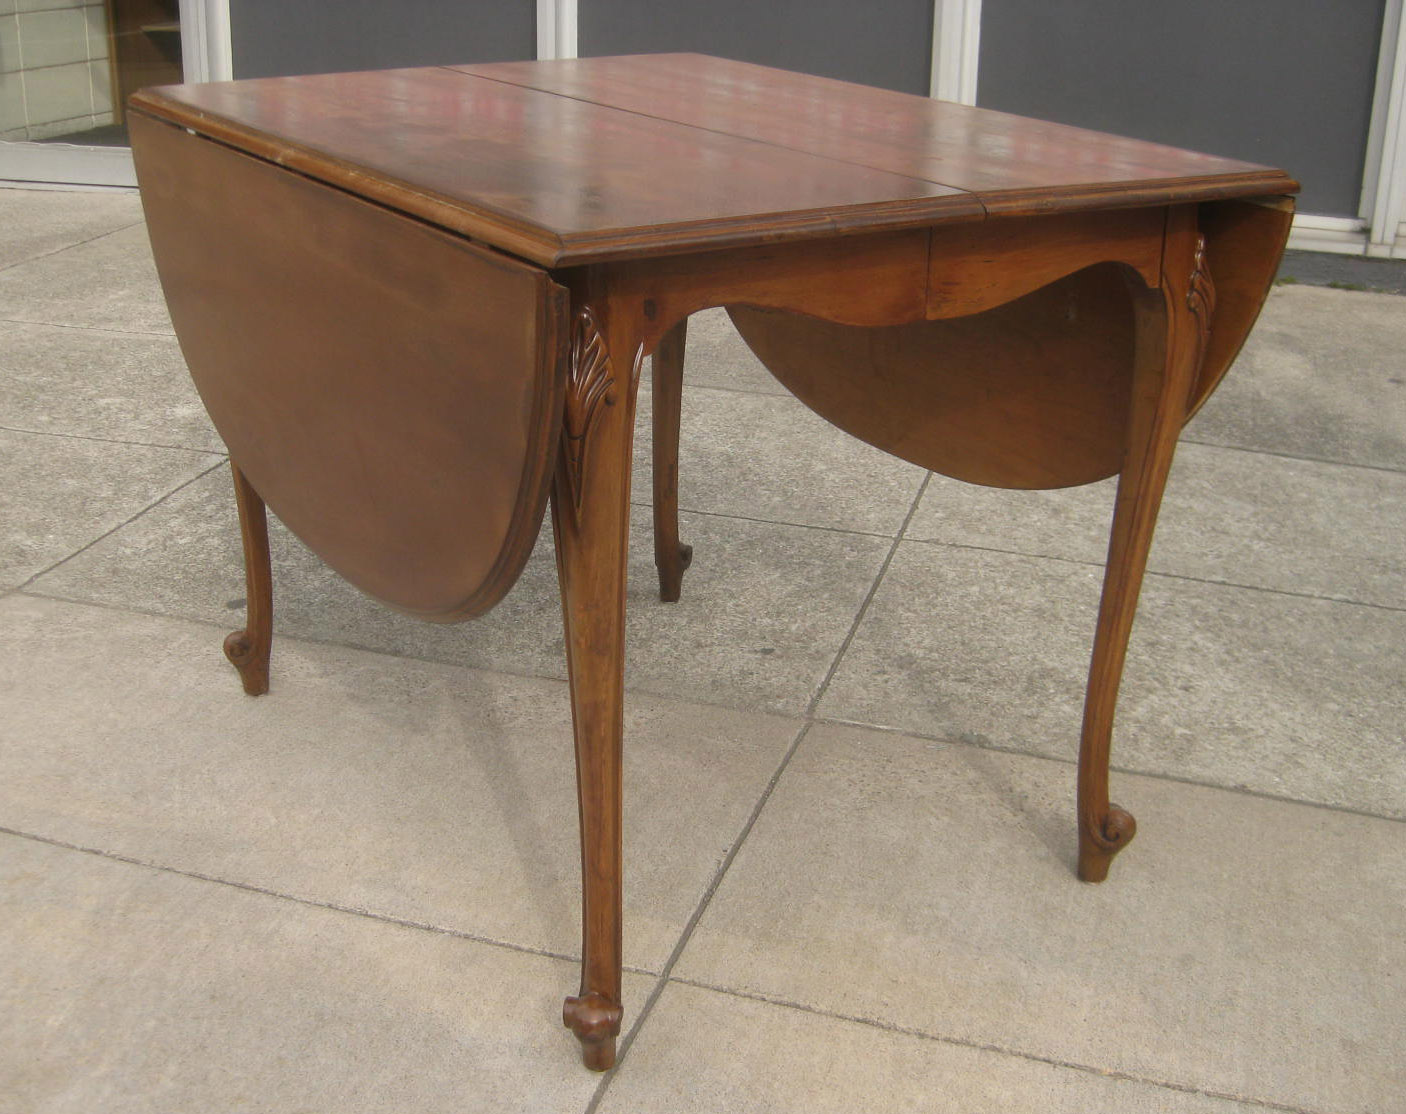 Sold Solid Wood Drop Leaf Table 100